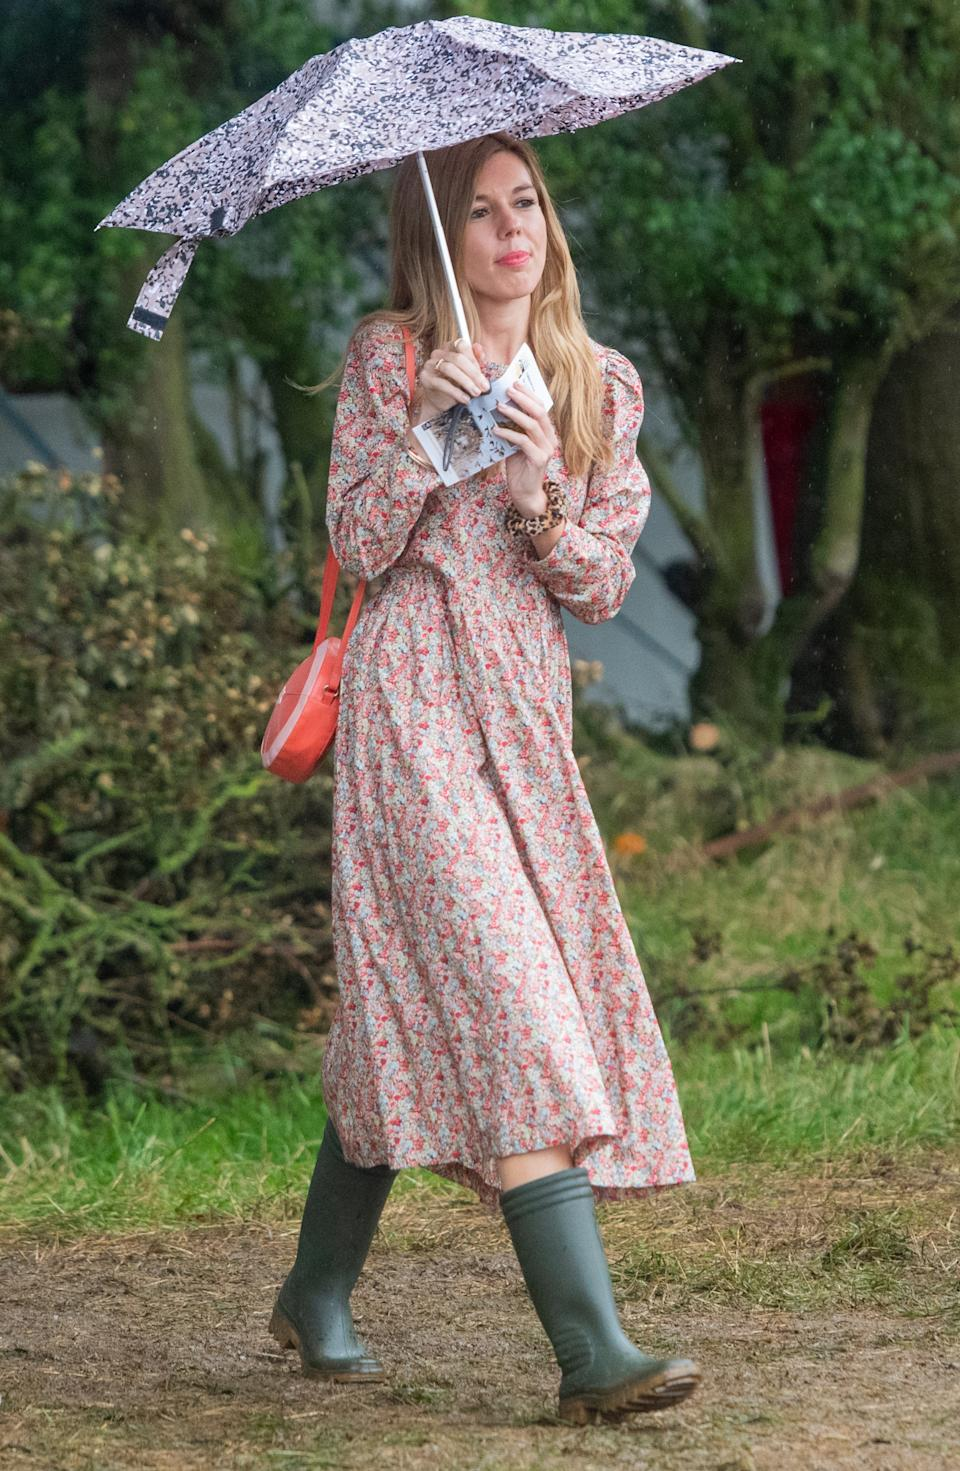 """To mark her first public speech as the UK's First Lady, Carrie Symonds went country-chic and wore a £255 sustainable eco-dress by designer Justine Tabak to Birdfair, an environmental conference at the Rutland Water Nature Reserve near Oakham. She styled the look with a pair of khaki wellington boots and a red handbag. <a href=""""https://fave.co/31GT3Zn"""" rel=""""nofollow noopener"""" target=""""_blank"""" data-ylk=""""slk:Shop now"""" class=""""link rapid-noclick-resp"""">Shop now</a>. <em>[Photo: Getty Images]</em>"""